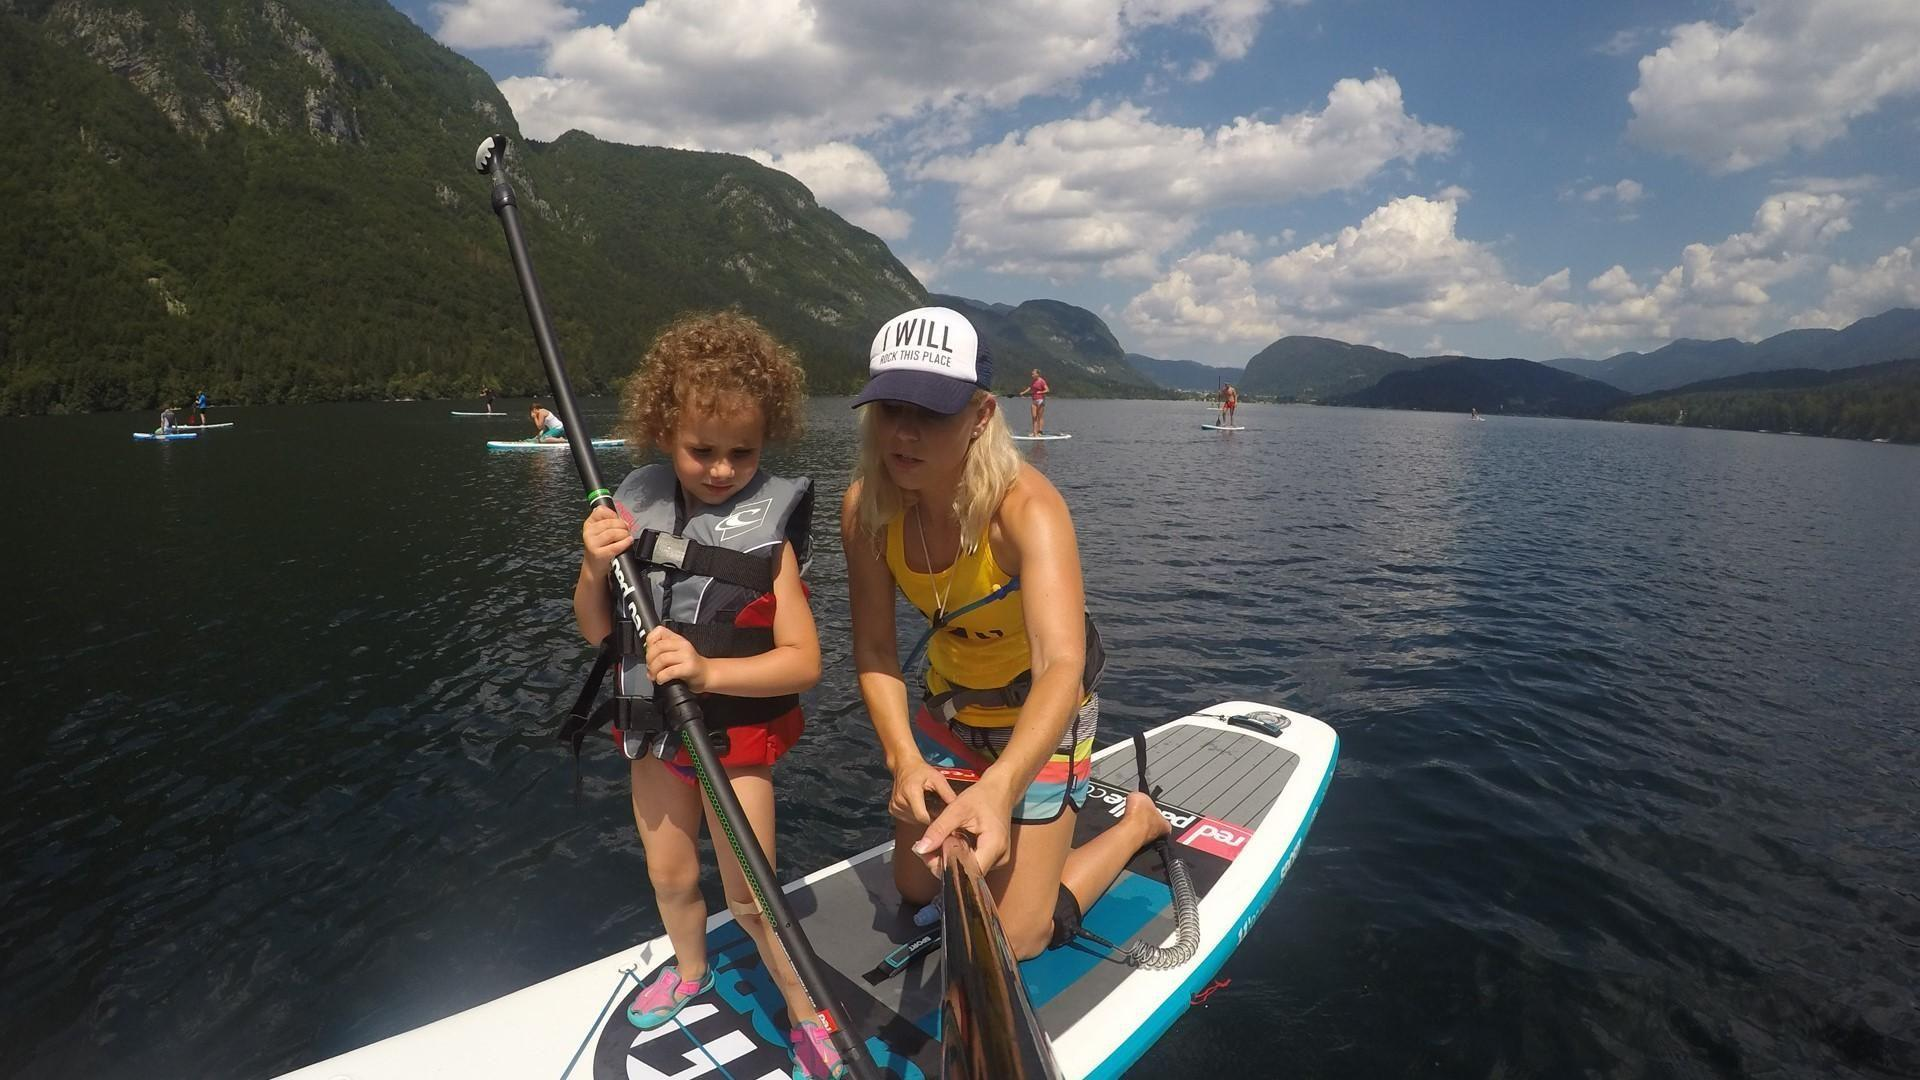 Best family summer activity on Bohinj lake